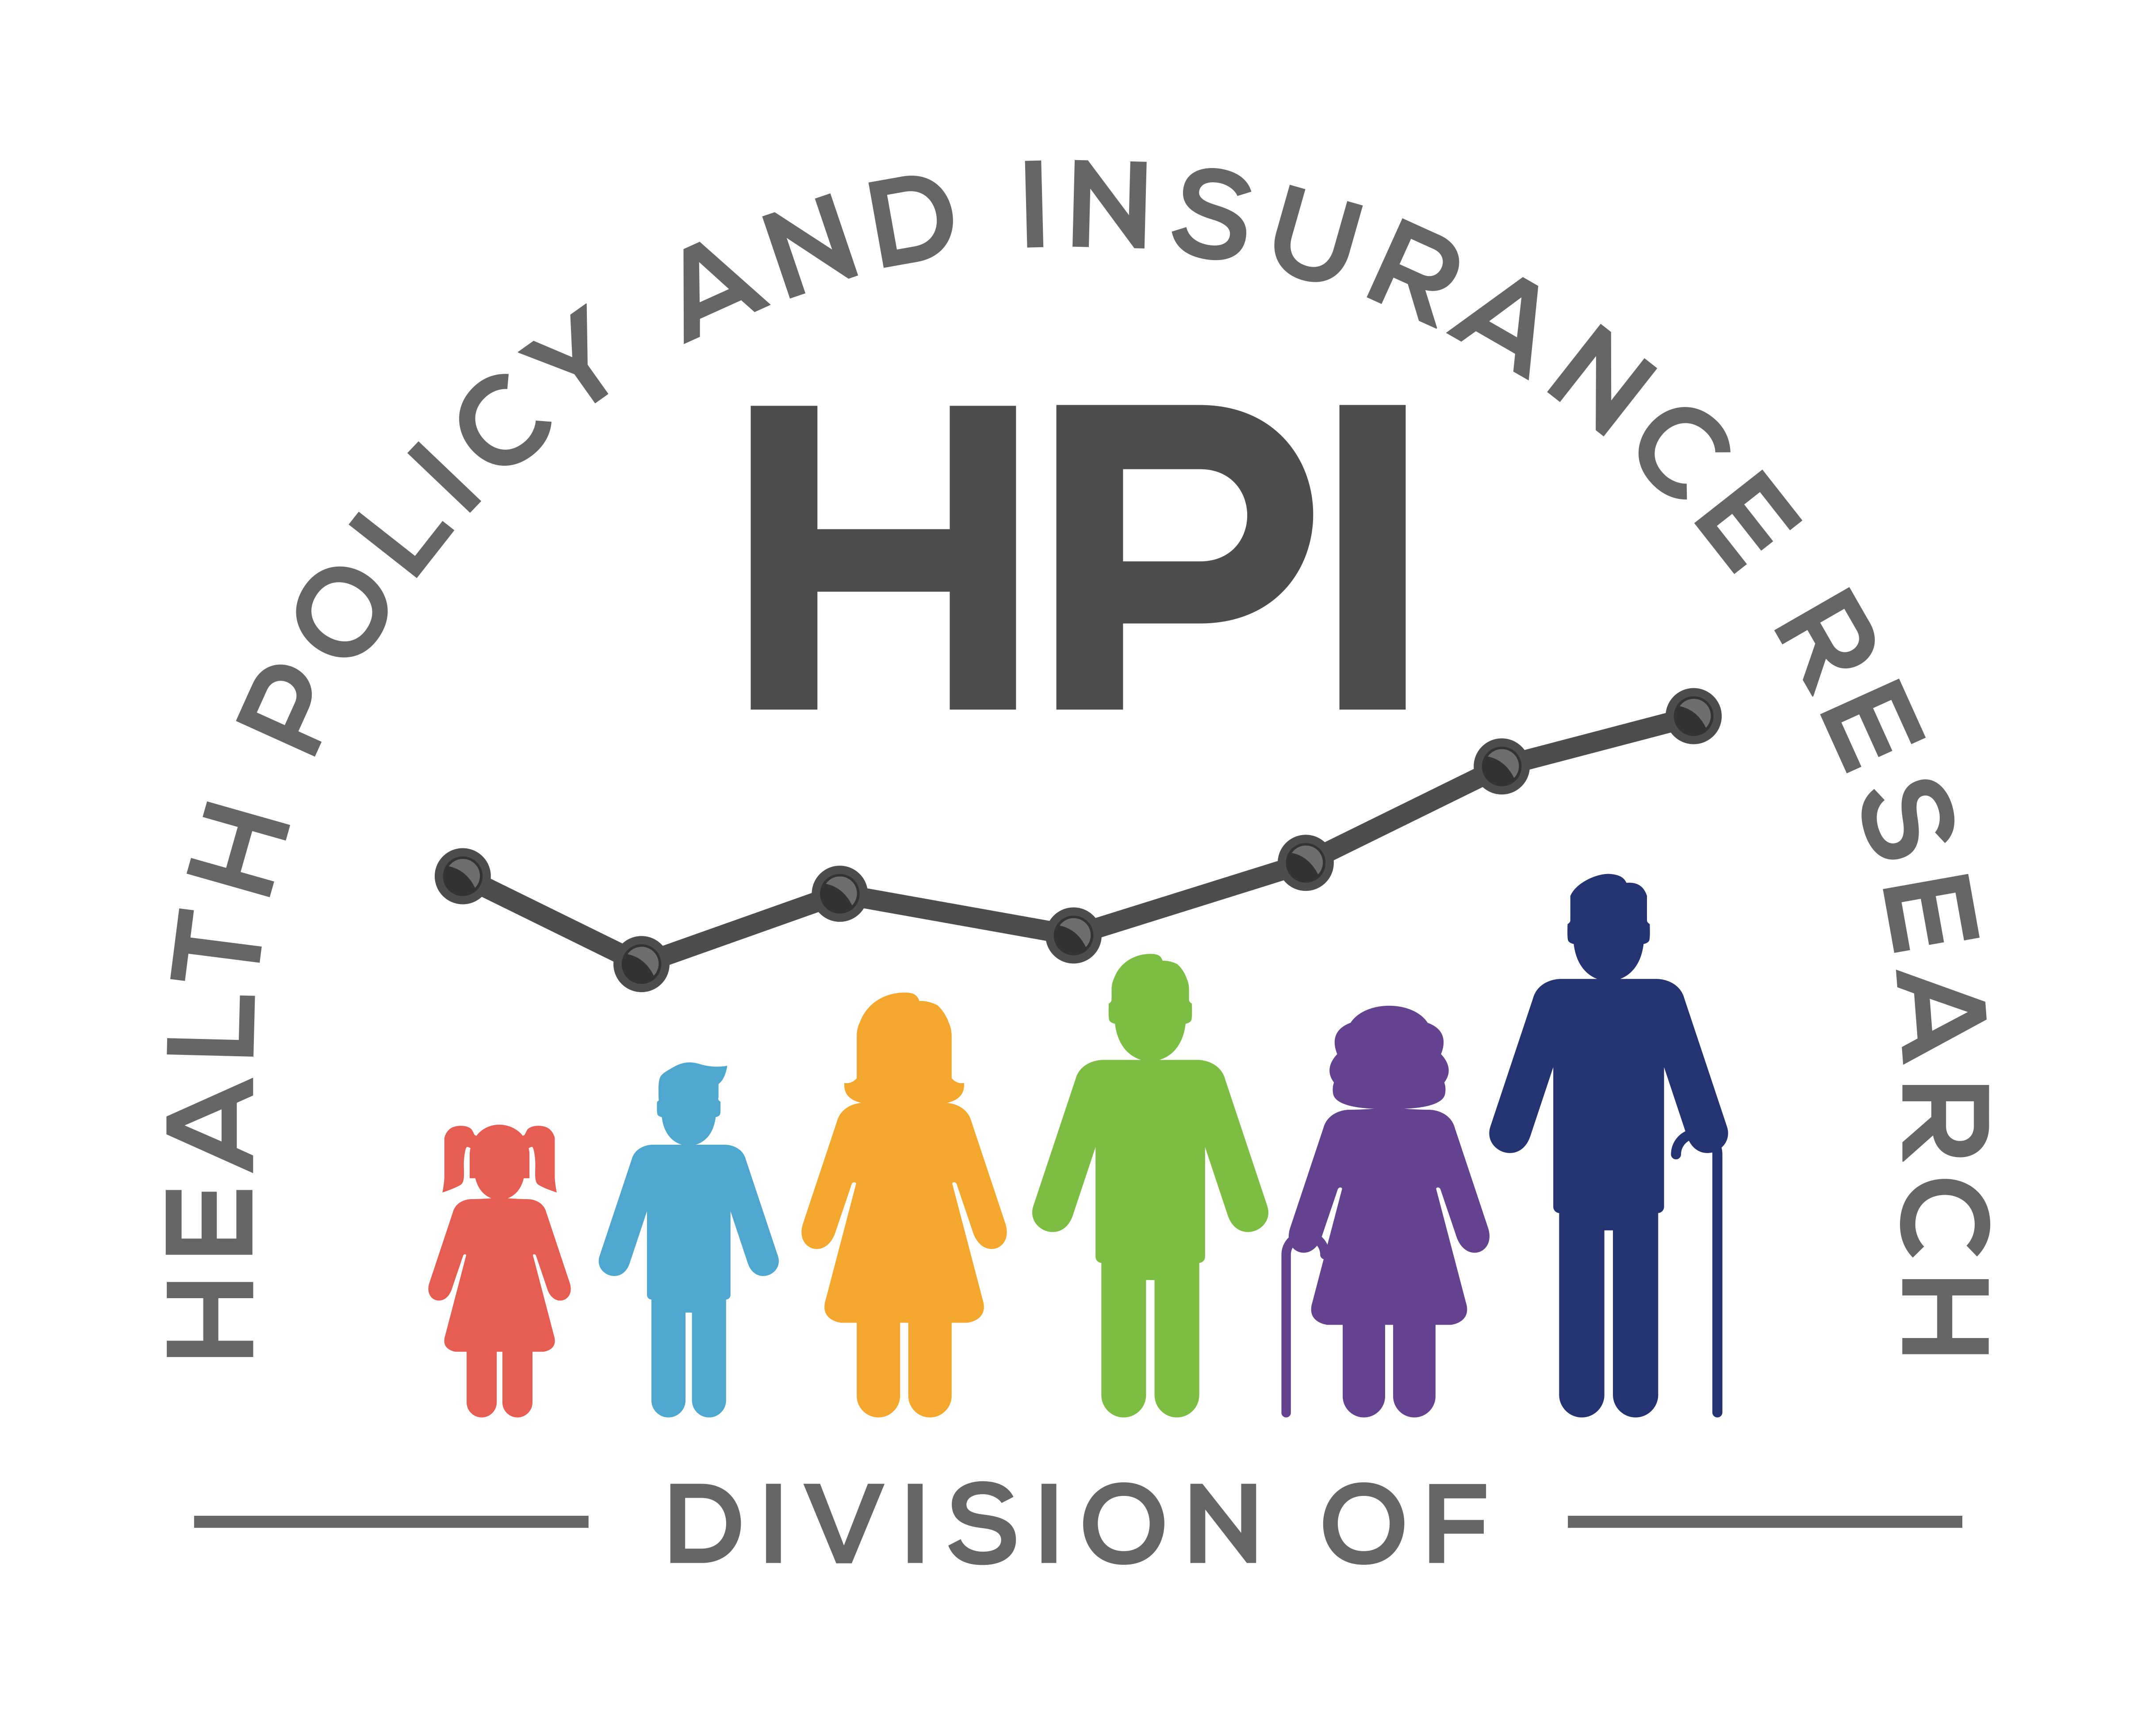 Division of Health Policy and Insurance Research